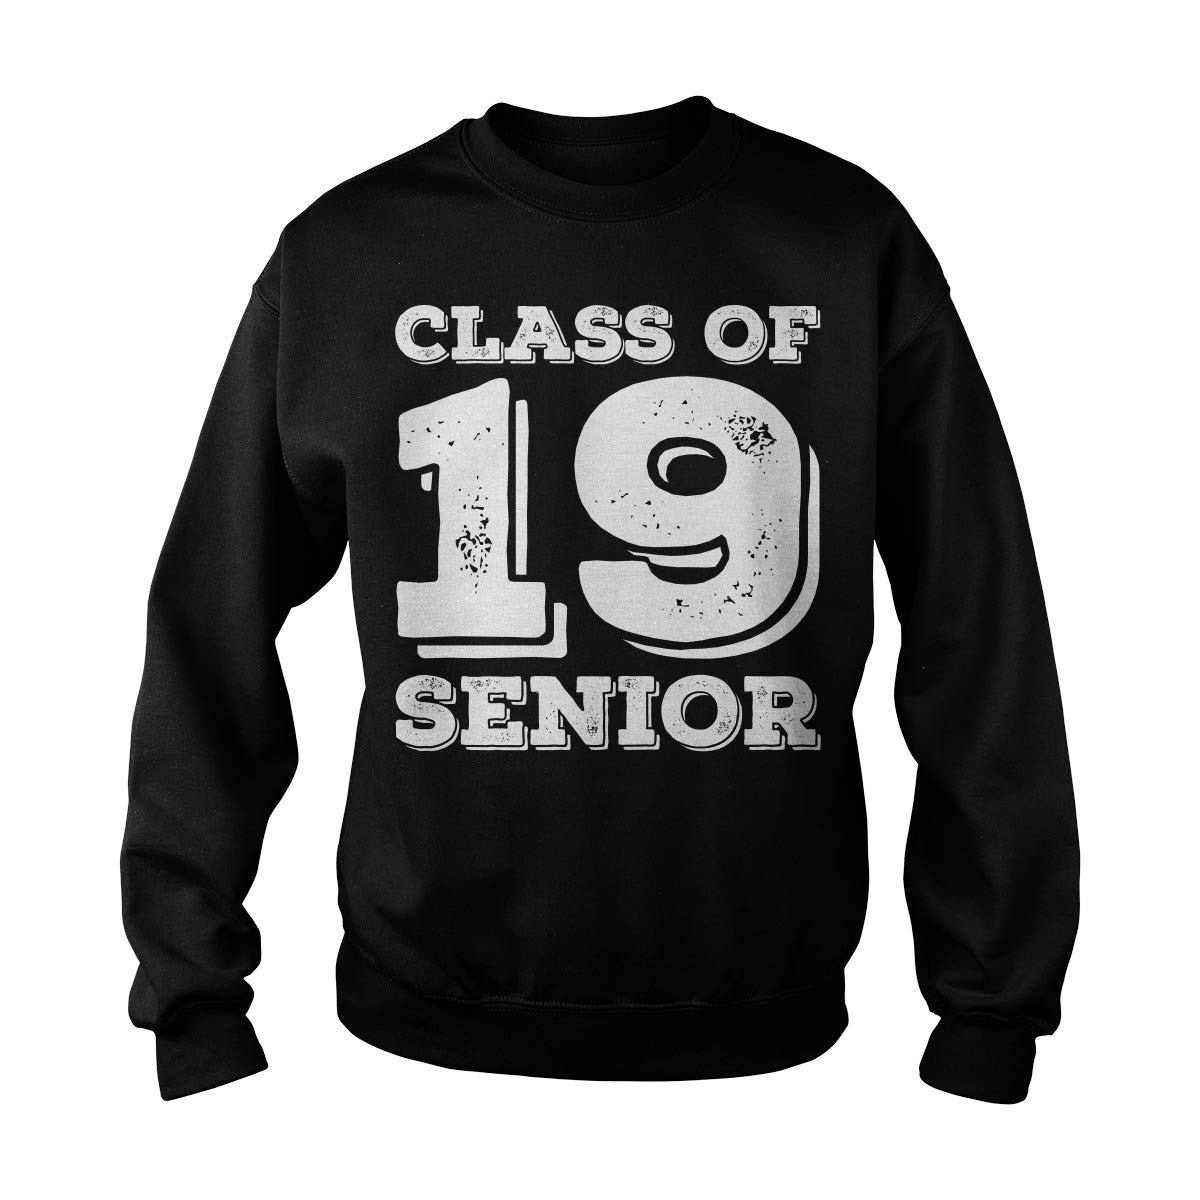 Zinko Senior Class of 2019 High School Senior Adult Crewneck Sweatshirt